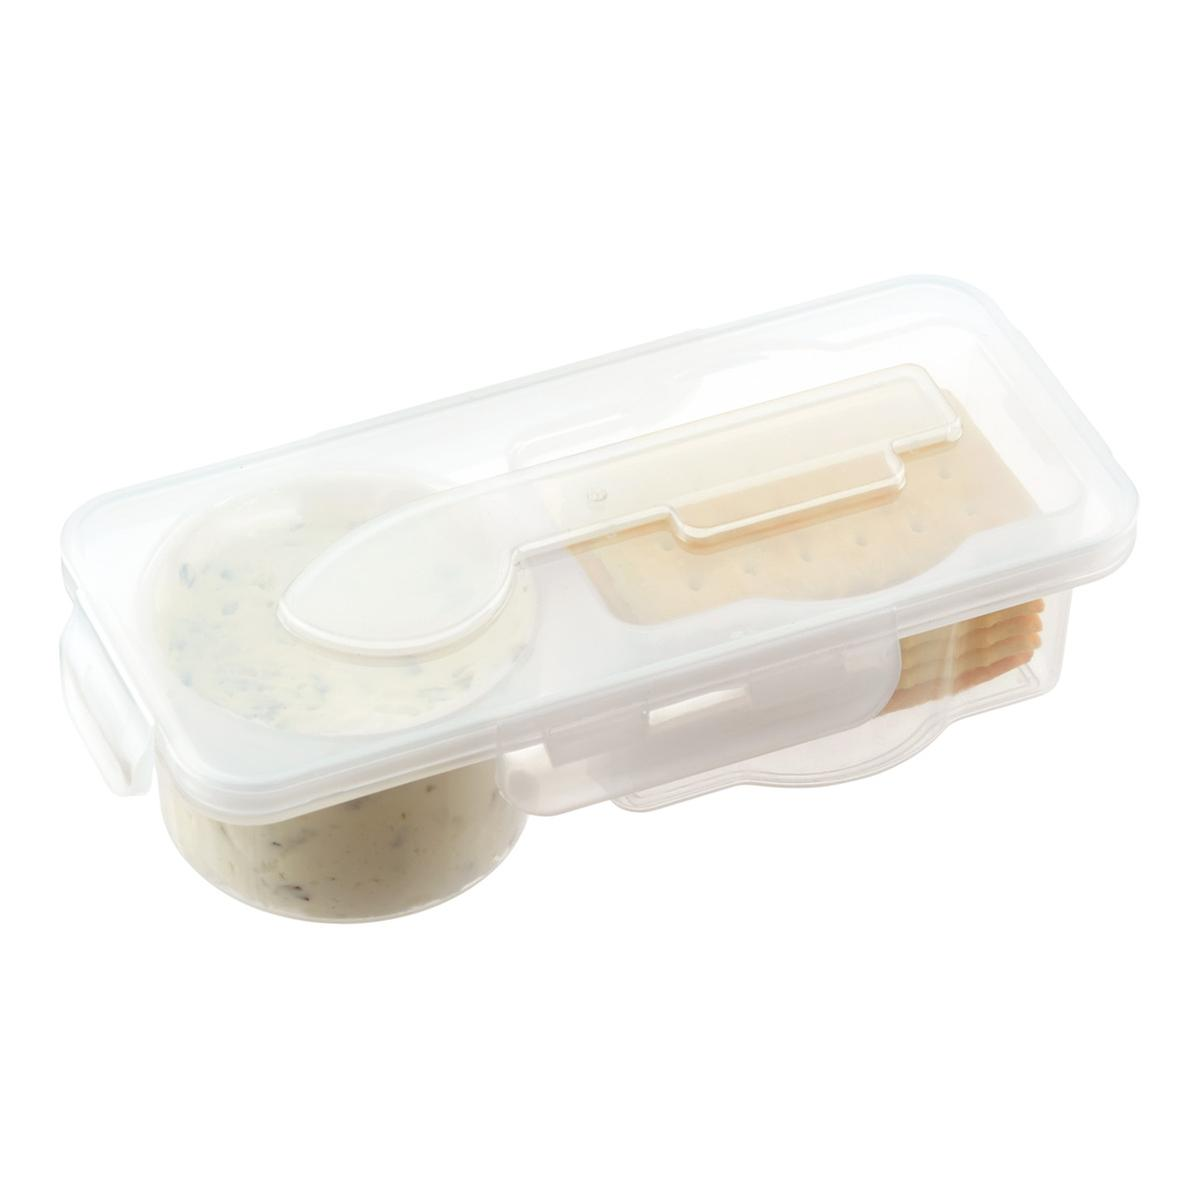 Cracker & Spread Container